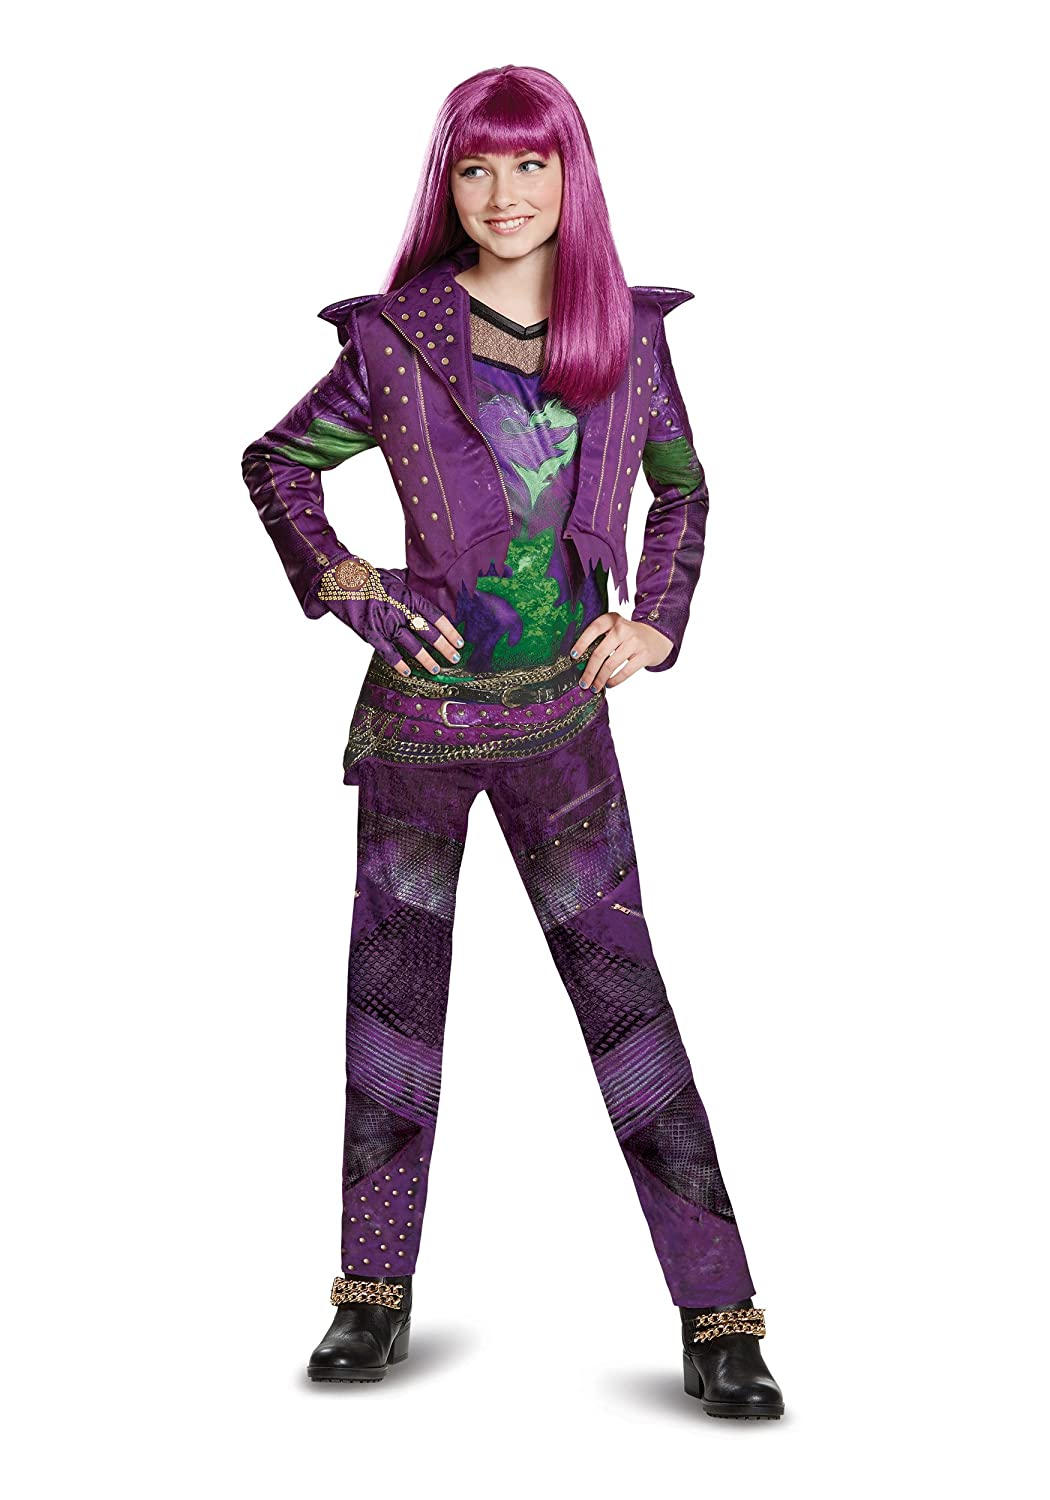 Disney Mal Deluxe Descendants 2 Costume, Purple, Large (10-12) 24126G